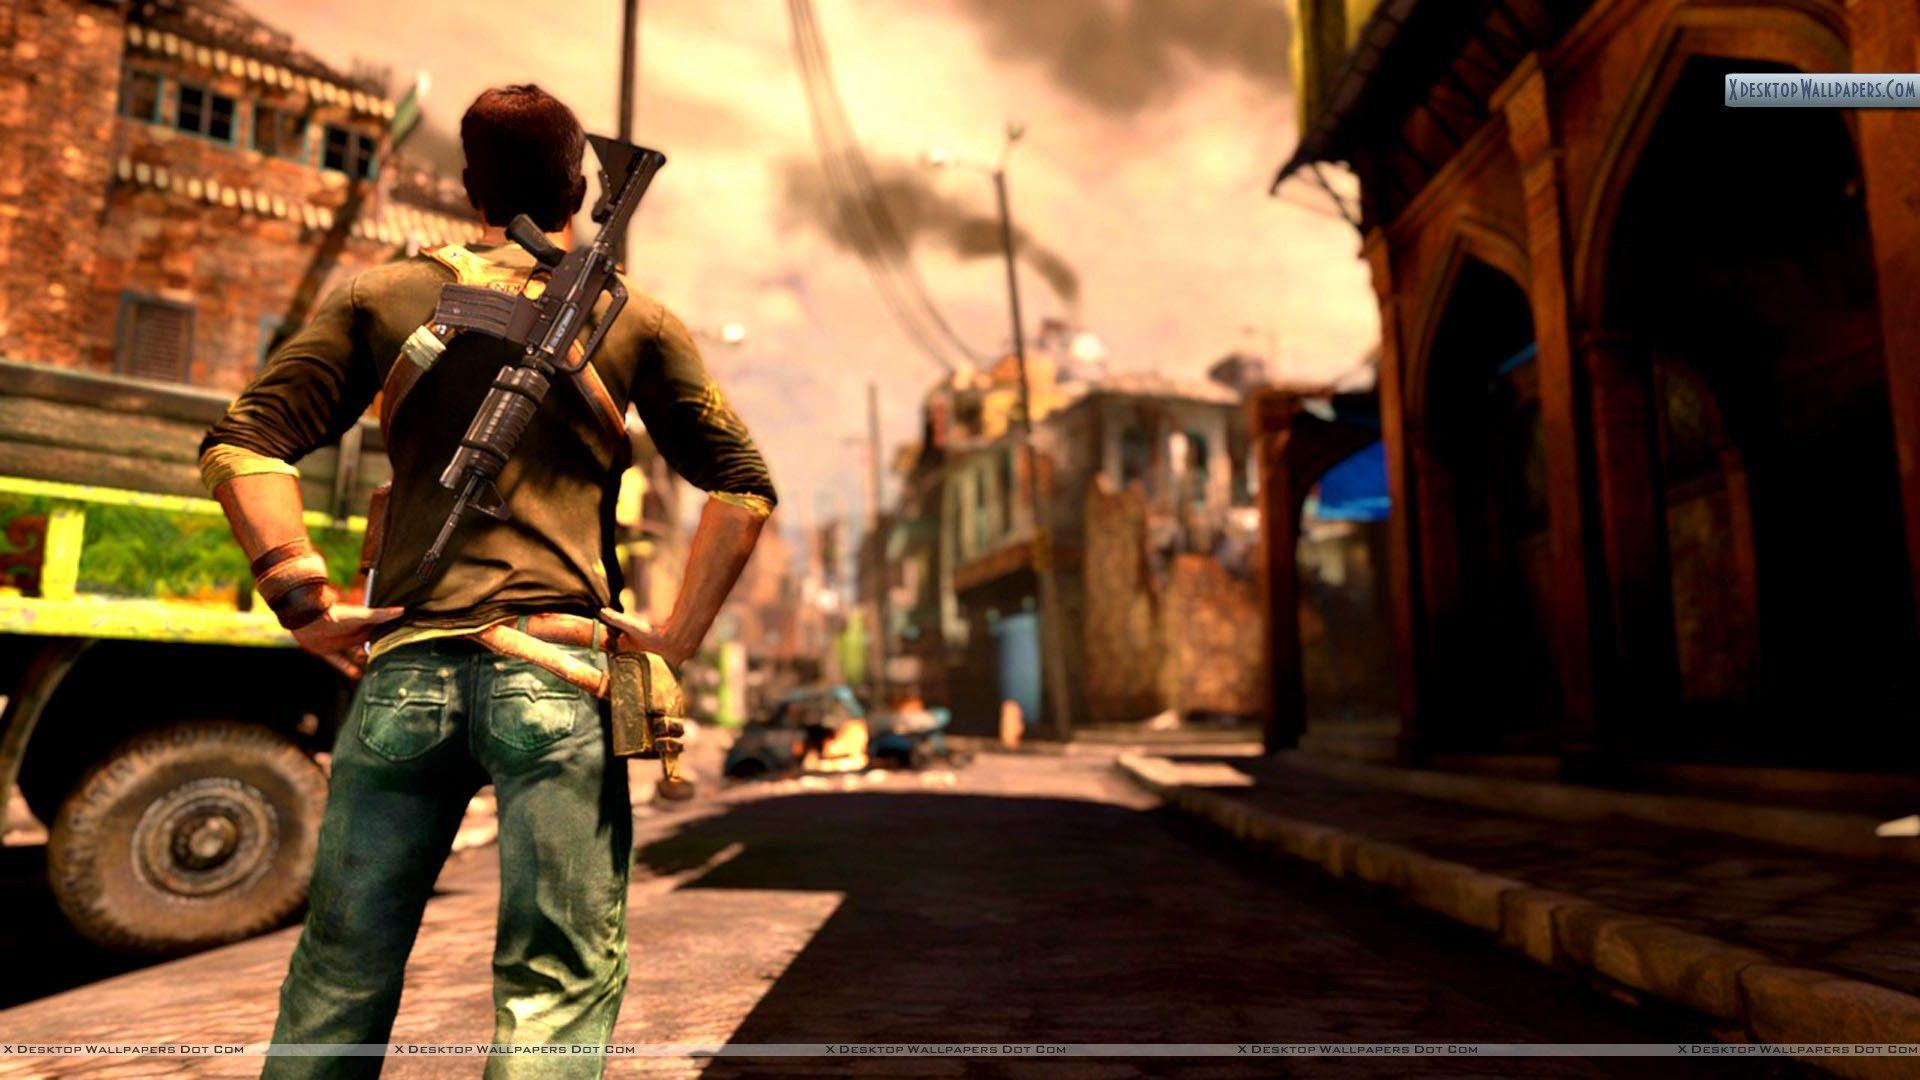 Uncharted 2 – Among Thieves Wallpapers, Photos & Image in HD